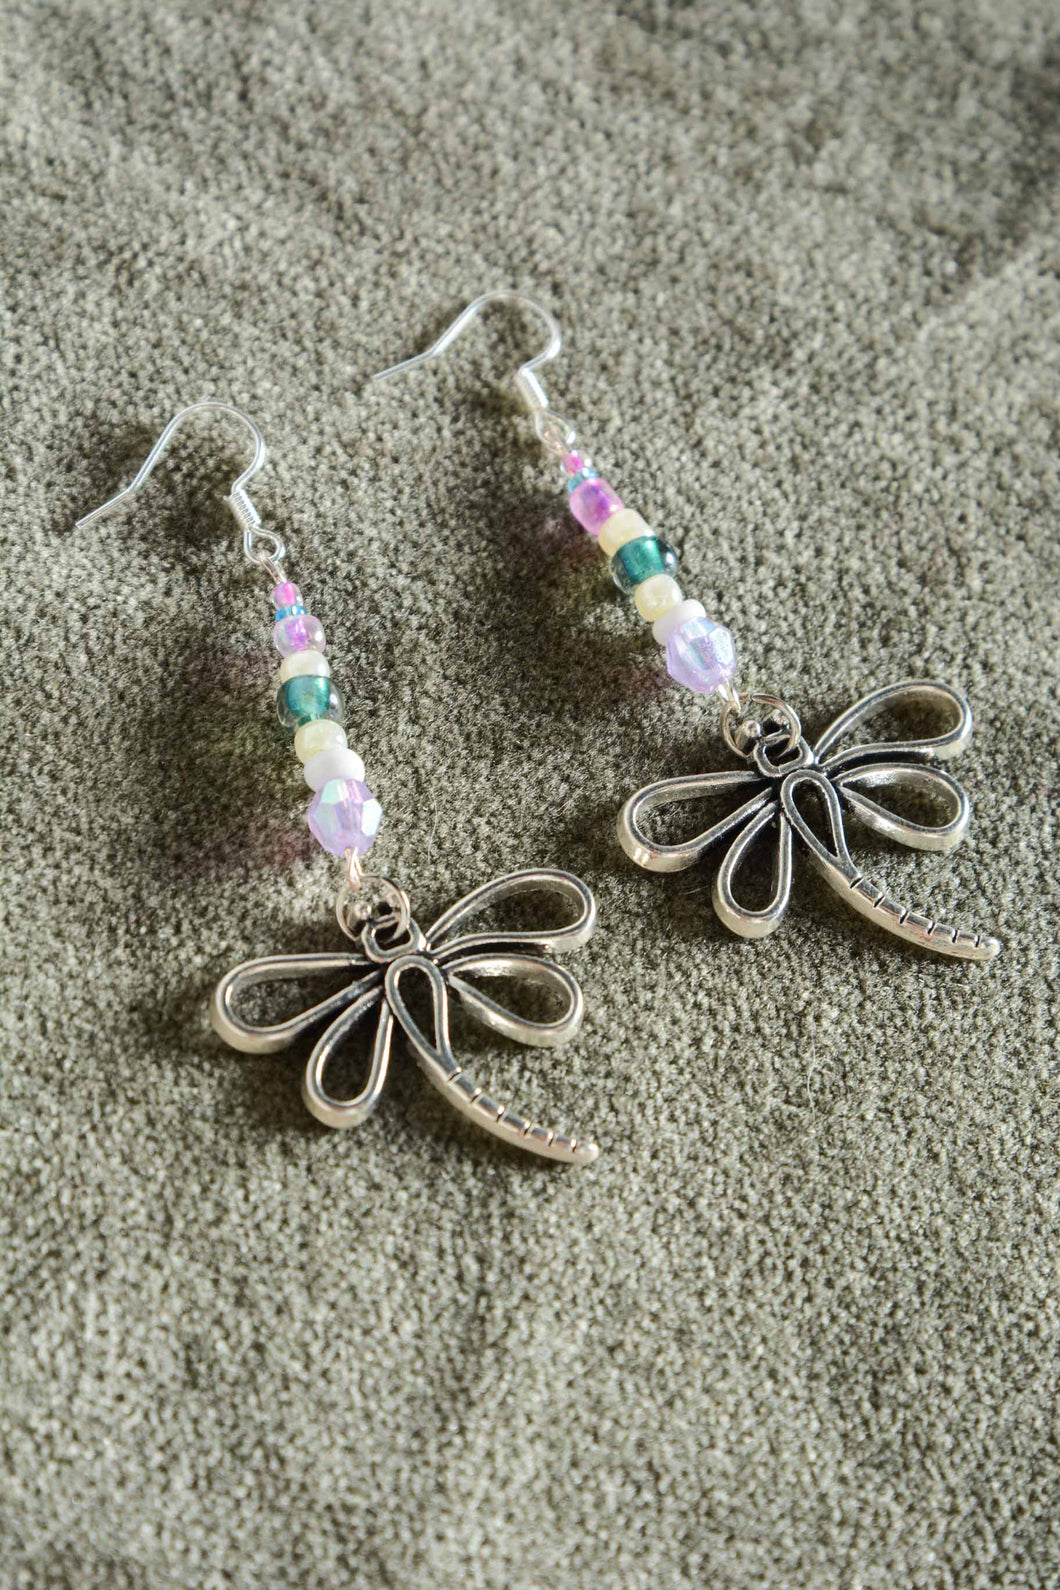 Bespoke handmade dragonfly earrings